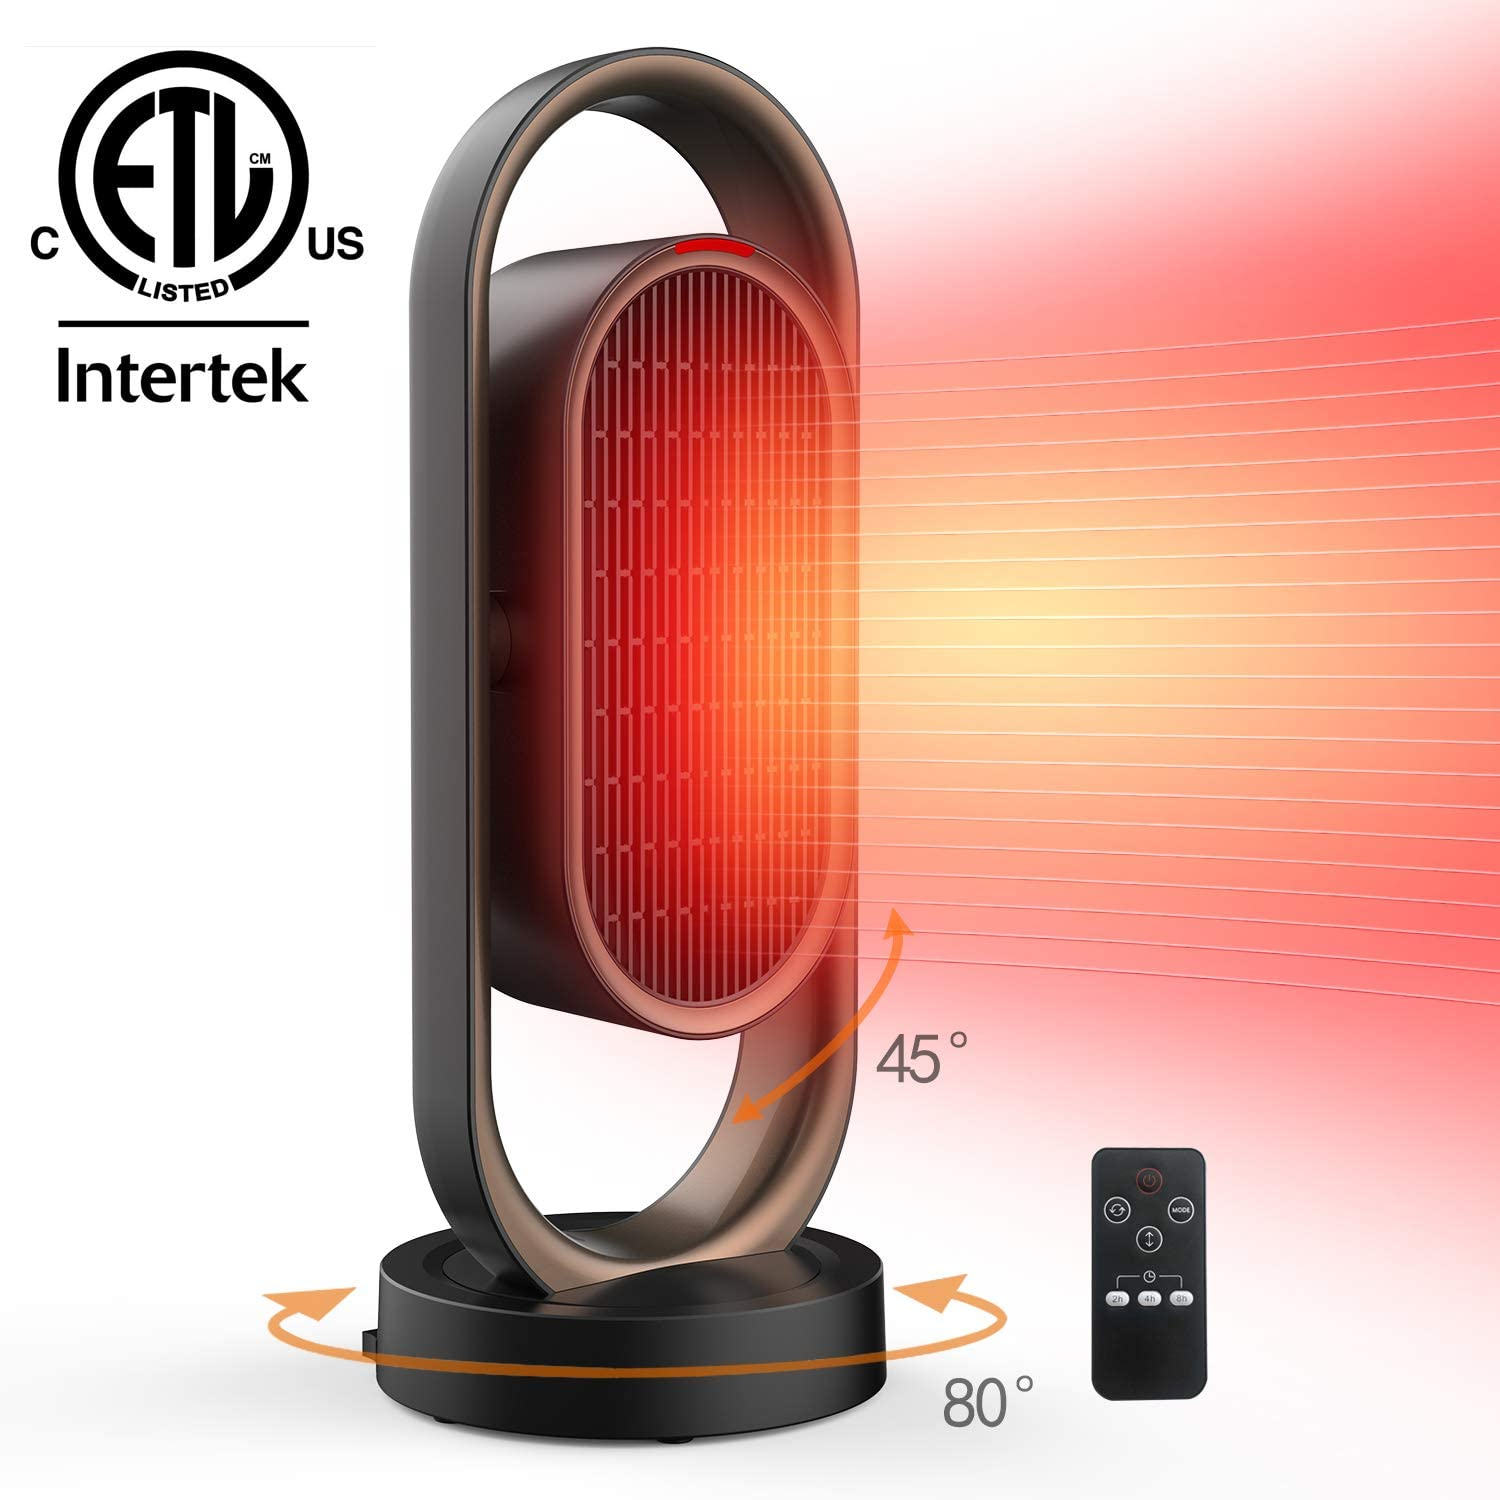 Space Heater for Home &Office - Ceramic Quiet Tower Heater 1 Seconds Heat Up Portable Small Personal Heater for Office Desk with 3 Temperature Modes,Oscillating Heater Fan for Home, Indoor Use